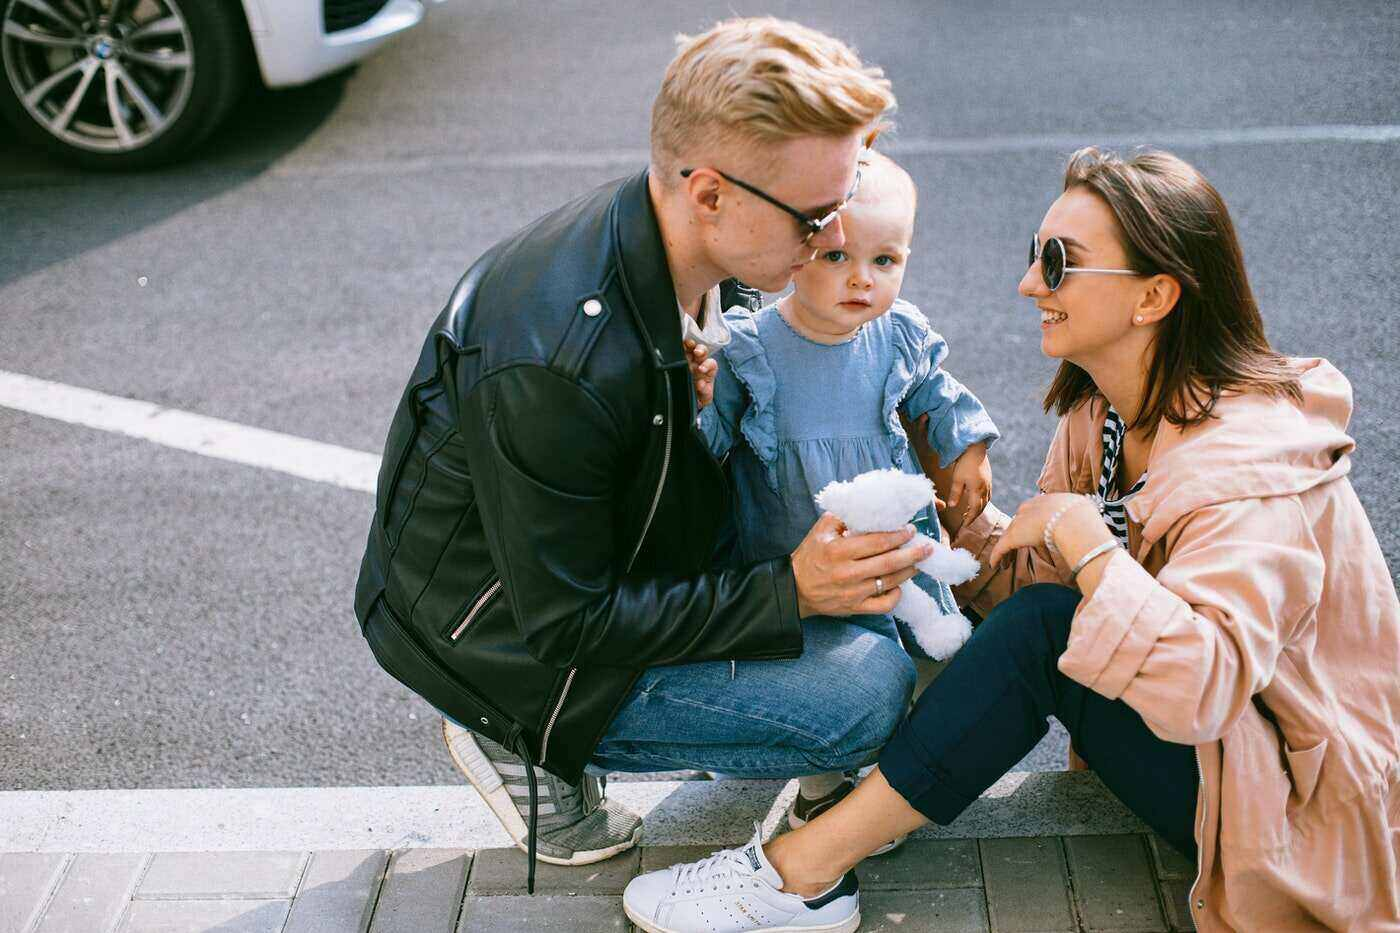 man and woman sitting on street curb with baby - free parenting tools